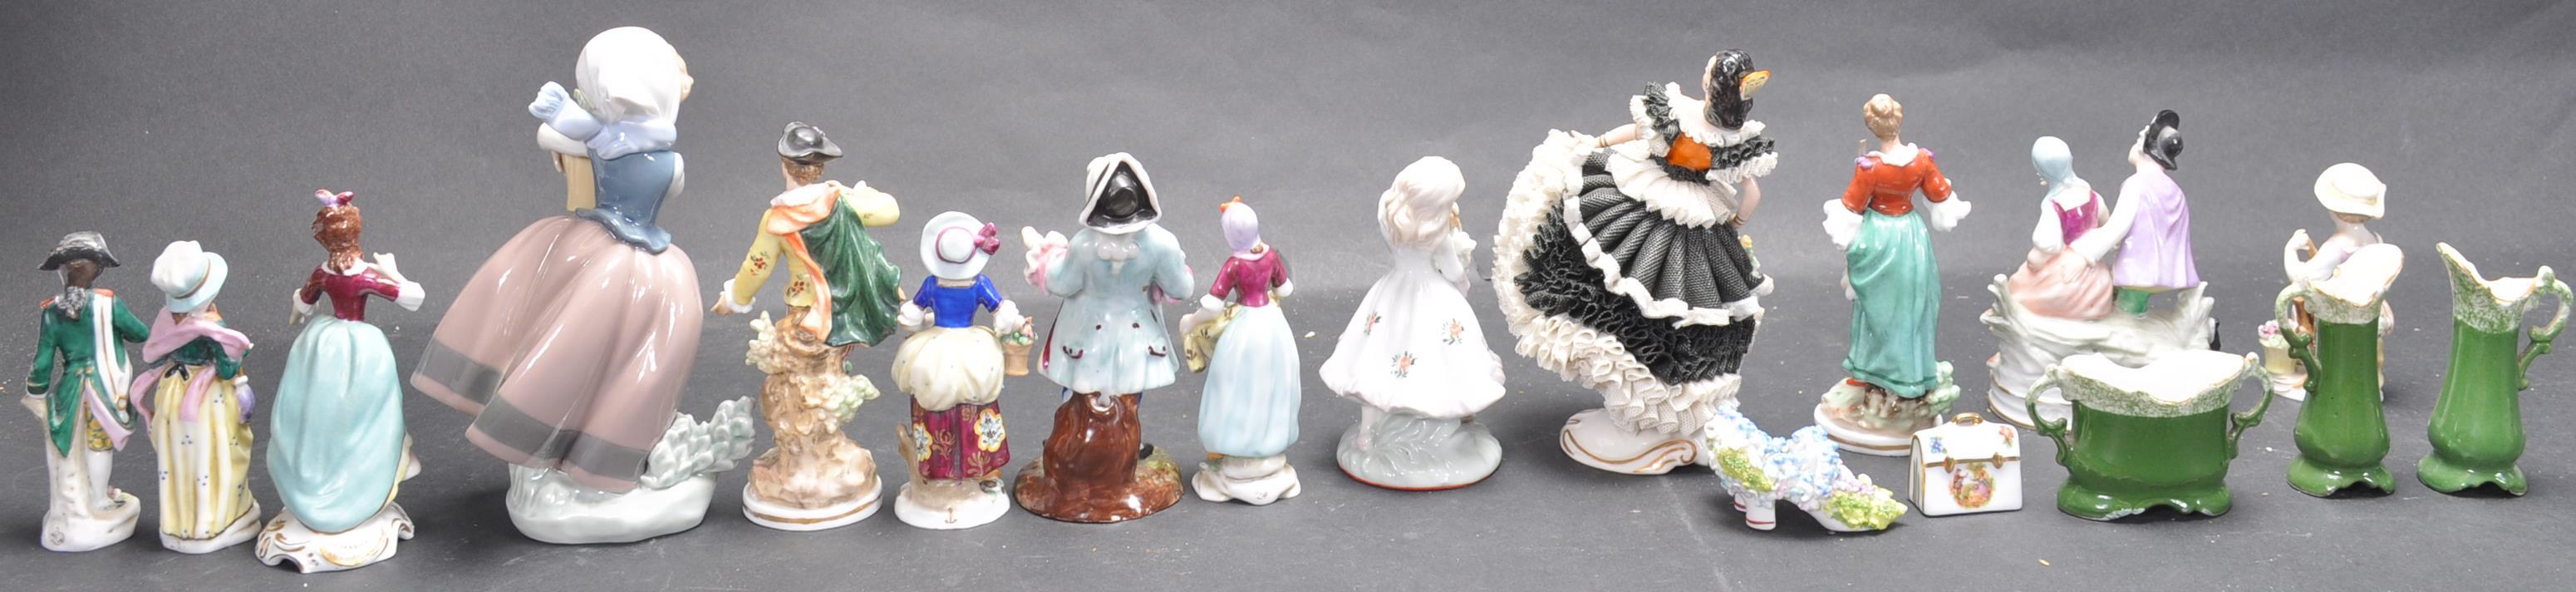 LARGE COLLECTION OF EARLY 20TH CENTURY CONTINENTAL FIGURINES - Image 3 of 6